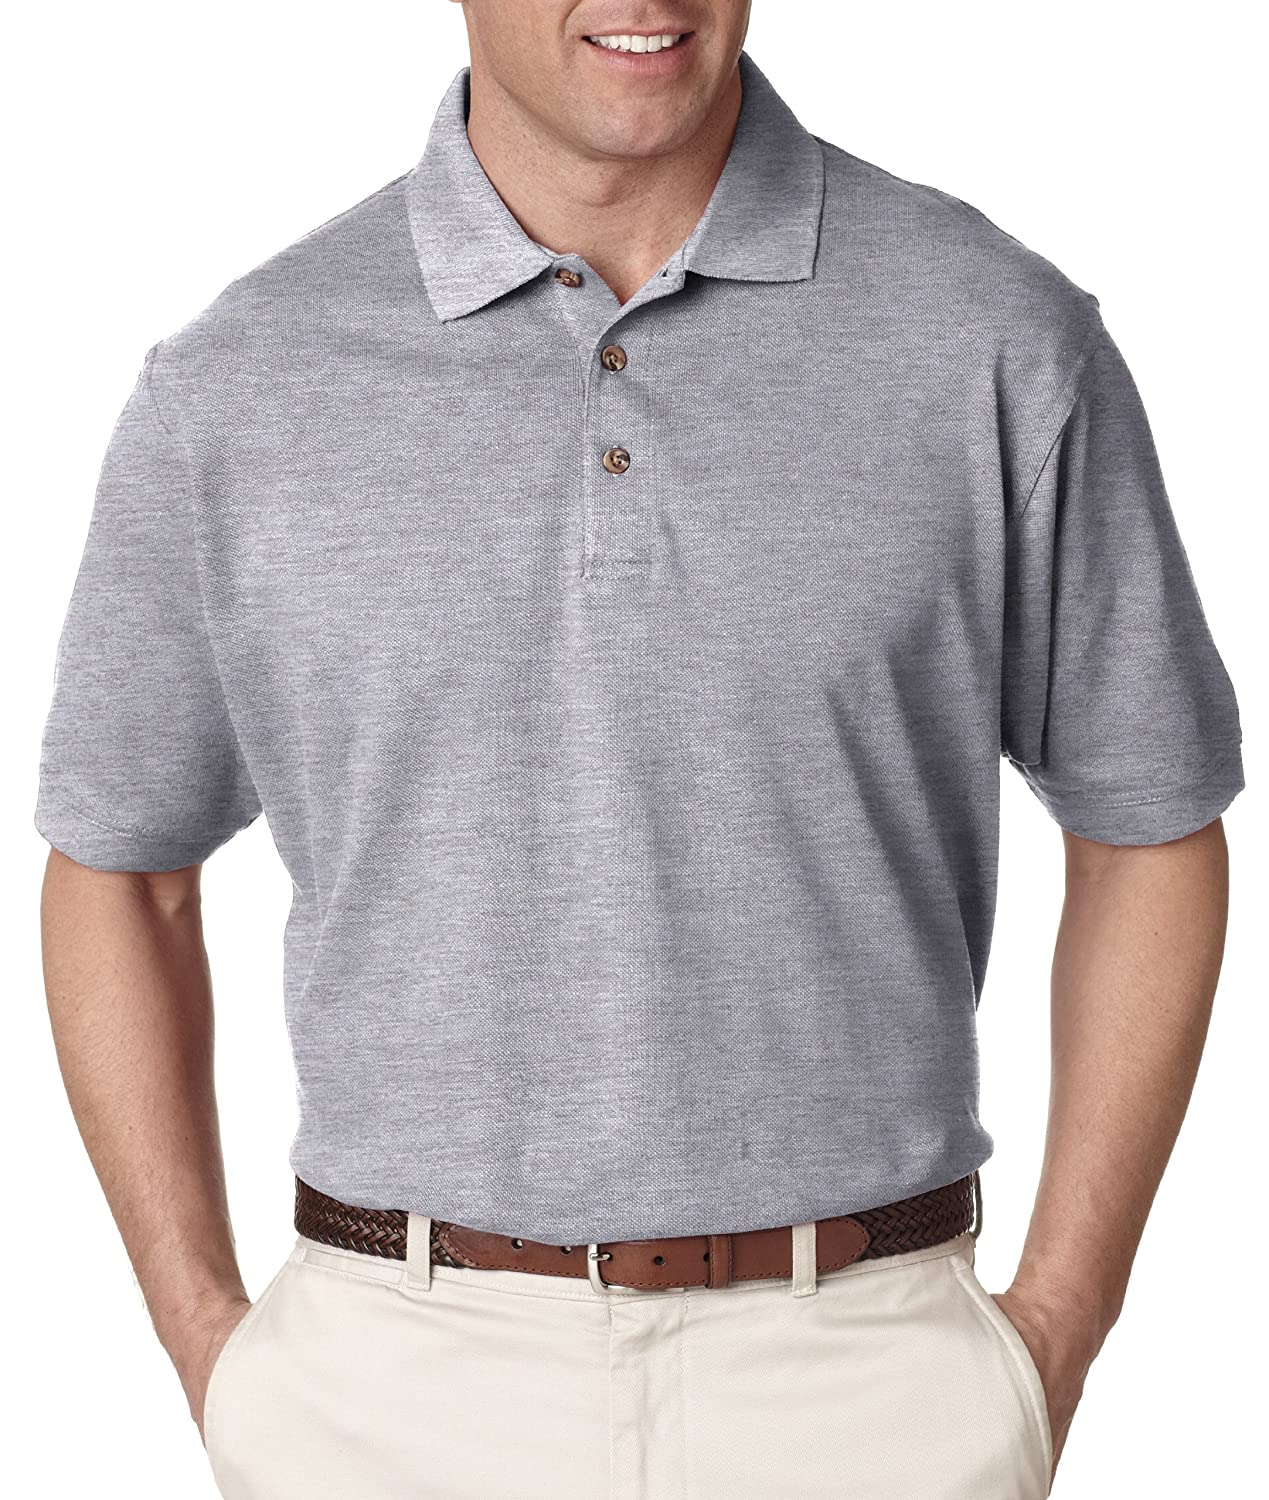 UltraClub Mens Relaxed Fit Taped Neck Classic Pique Polo Shirt